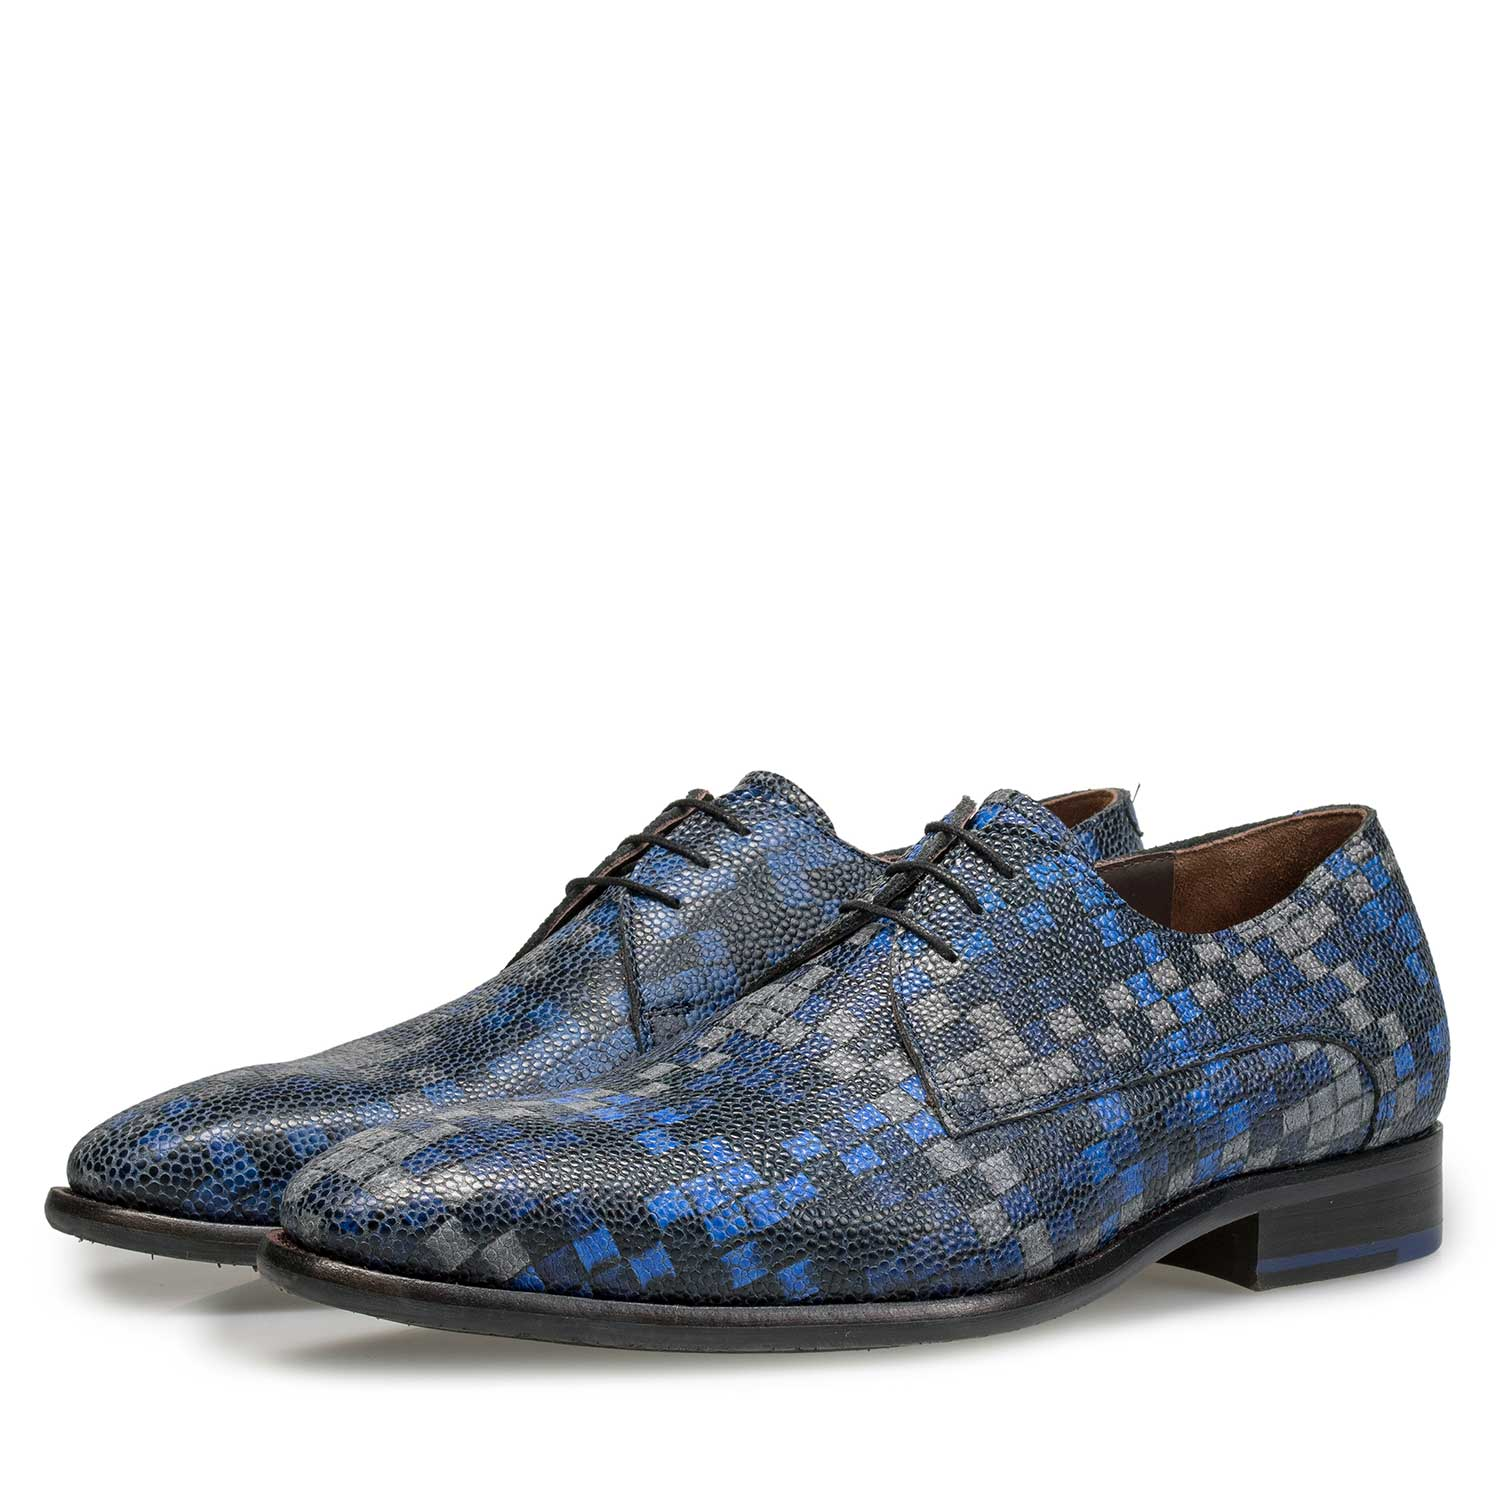 18069/00 - Blue lace shoe with graphic print